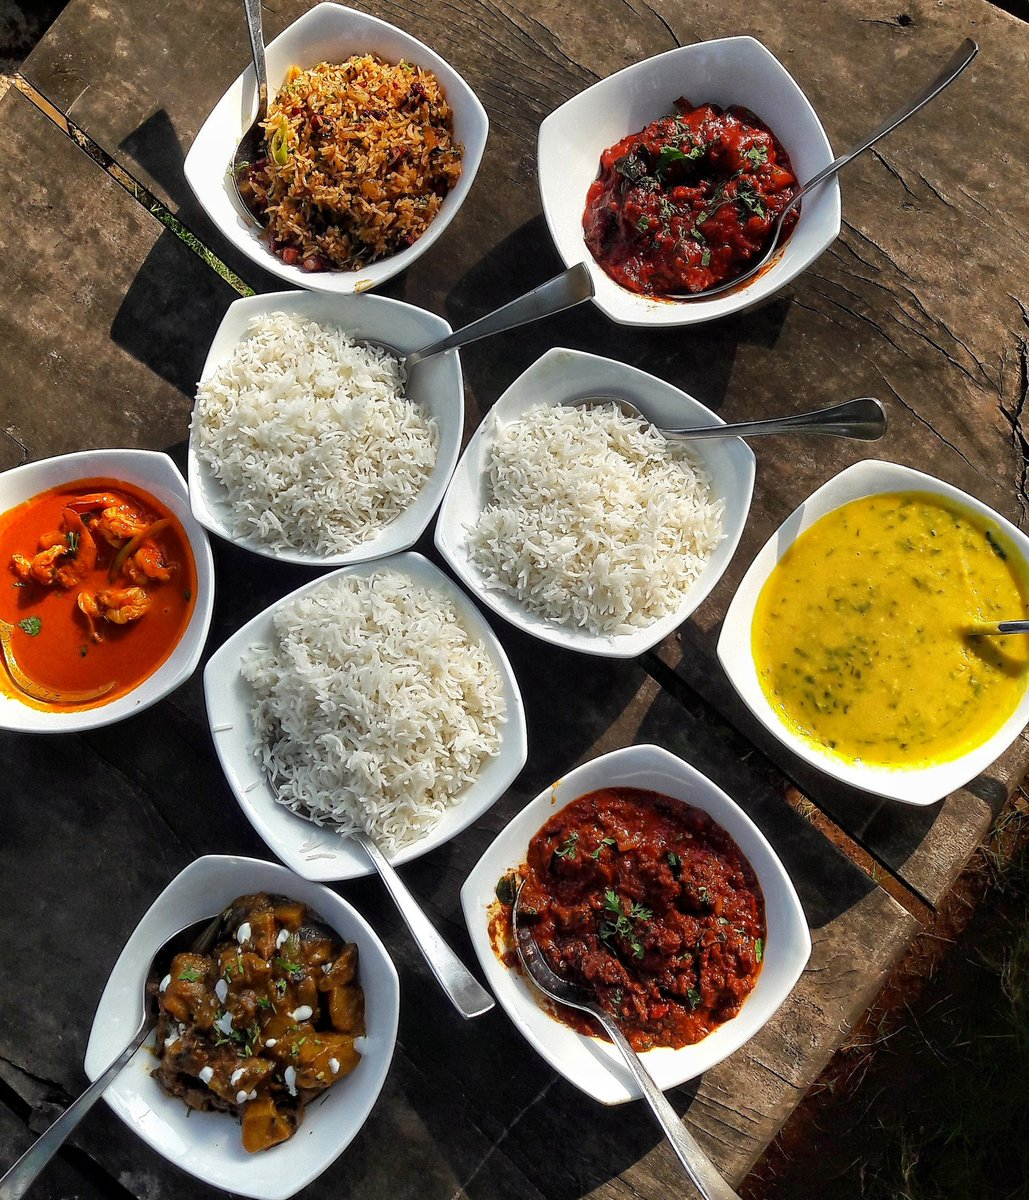 #GOA !!! Who is up for a Round Two of : Maddening Lunches,  Beautiful Brunches,  Roadside Munches &amp;, Midnight Binges !! #travel <br>http://pic.twitter.com/Zy2j9lJaxl